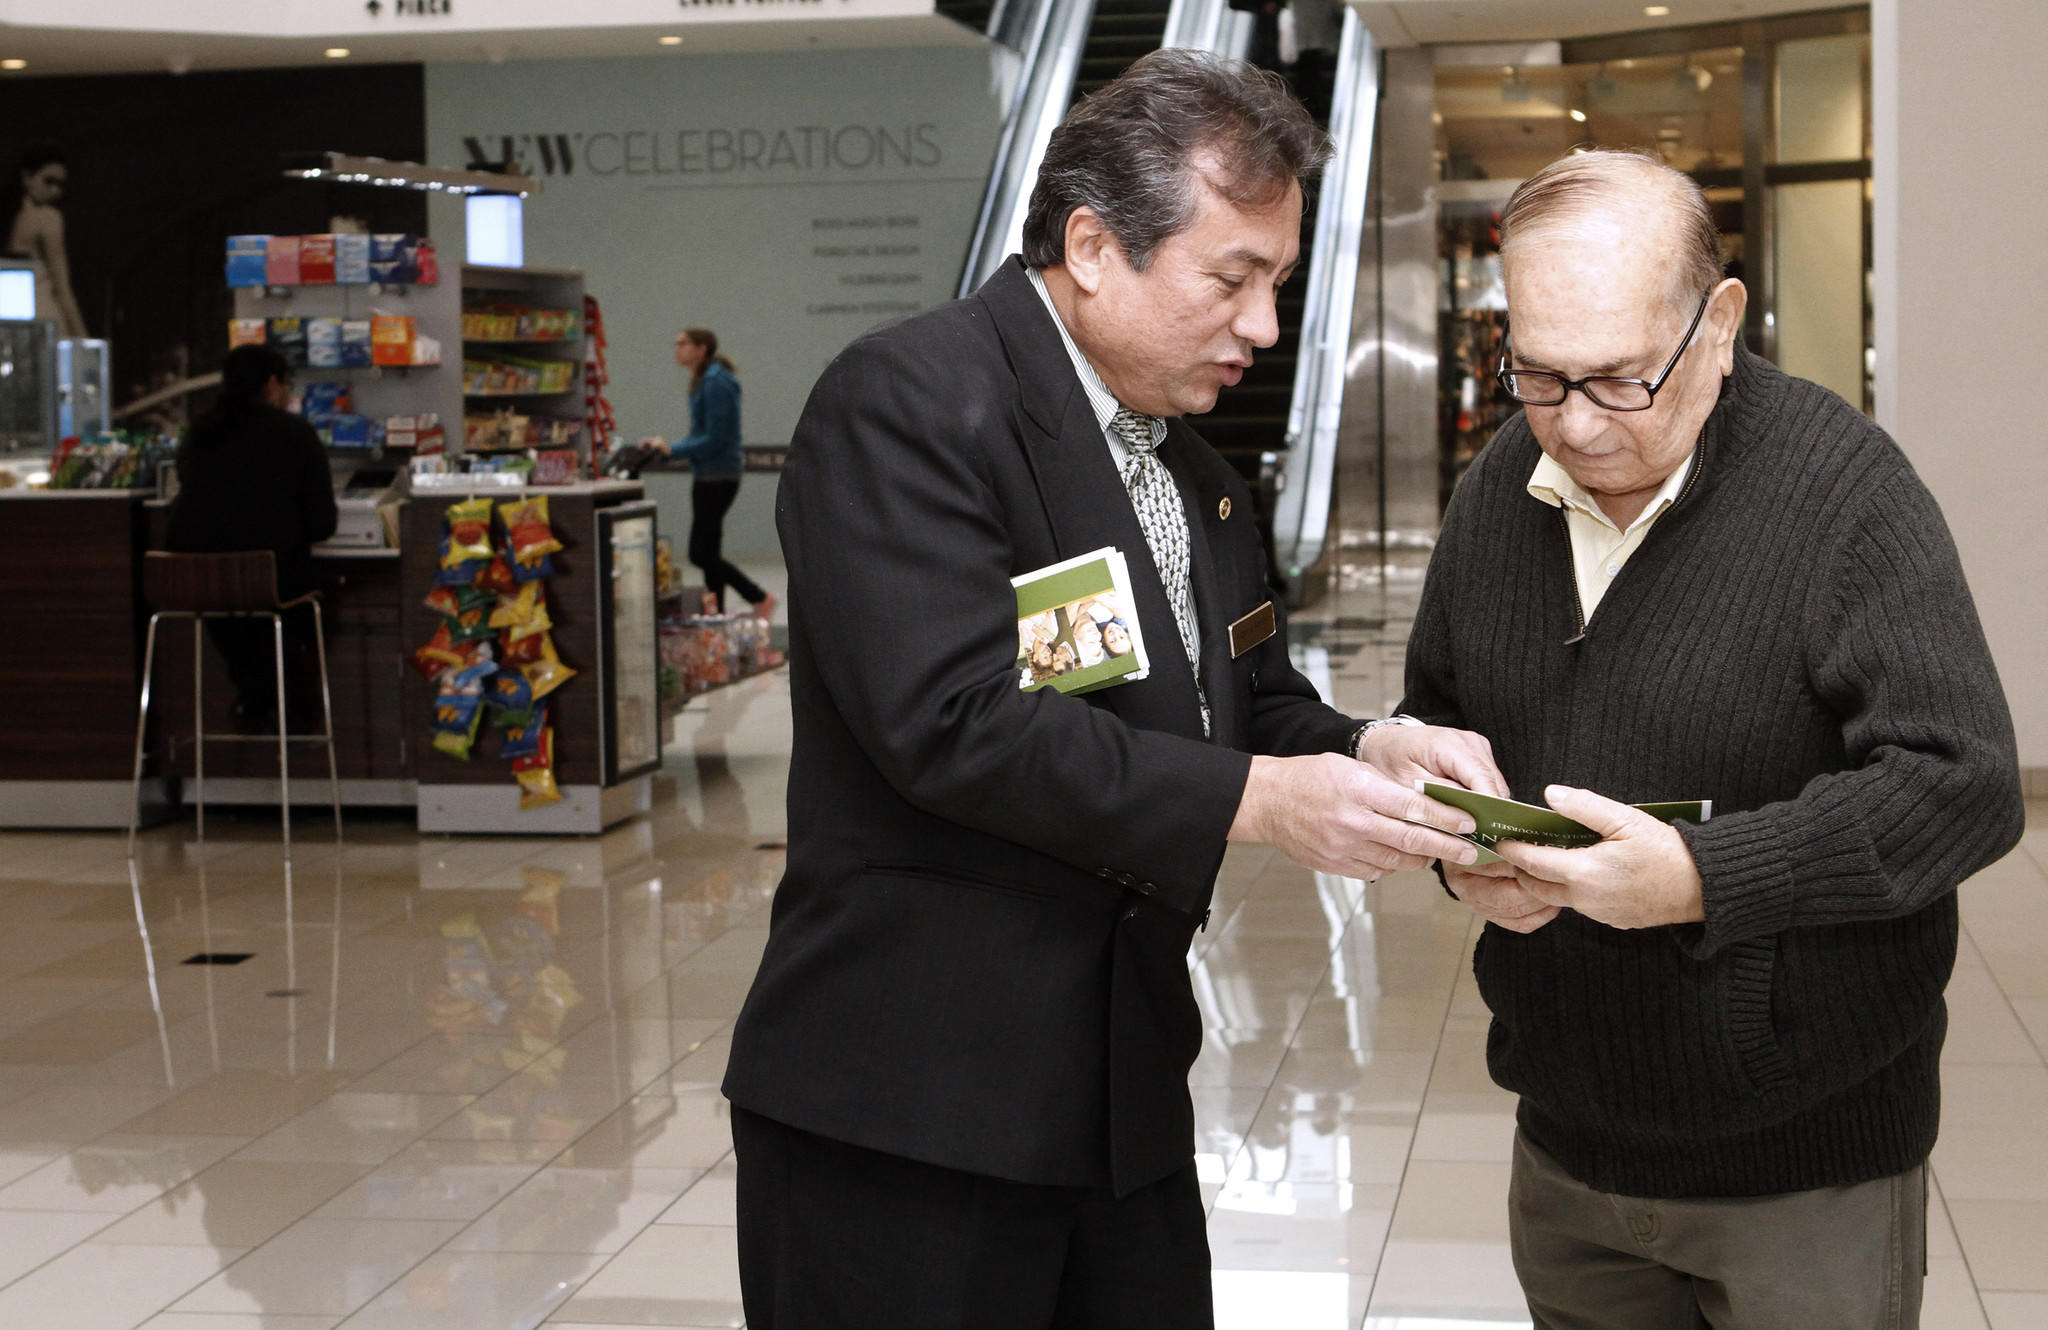 Forest Lawn Glendale advance planner Argenis Barreto, left, talks to Wadhu Bhojwani of Glendale about funeral planning at the FL kiosk at the Glendale Galleria on Friday, Feb. 7, 2014. The Forest Lawn kiosk has been at the mall next to Macy's since the beginning of 2014.